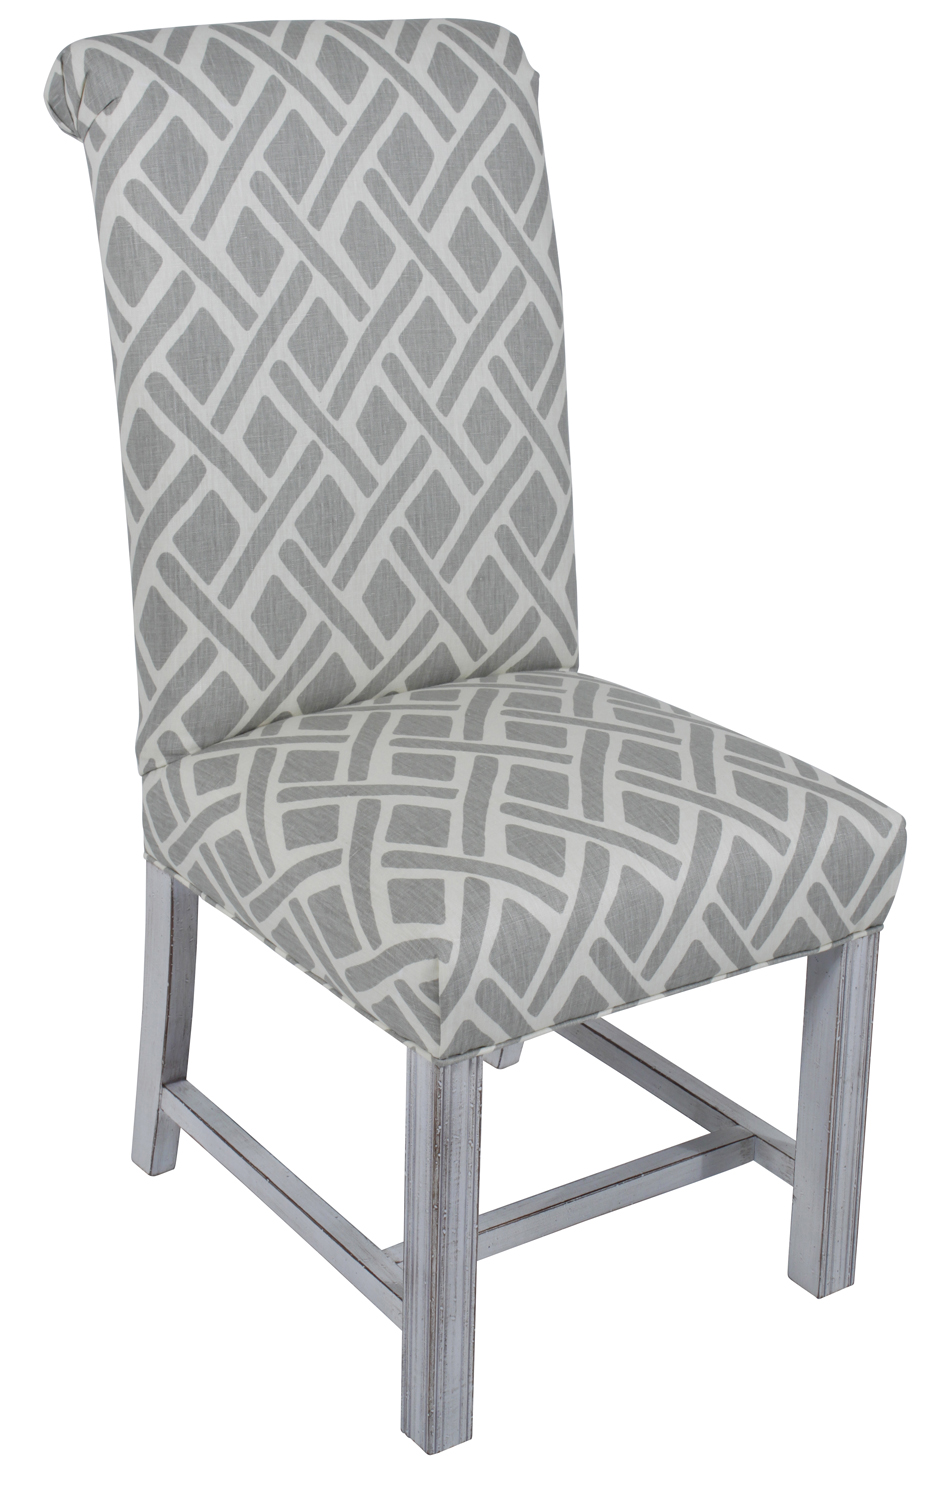 Waltham_ScrollBack_Chair